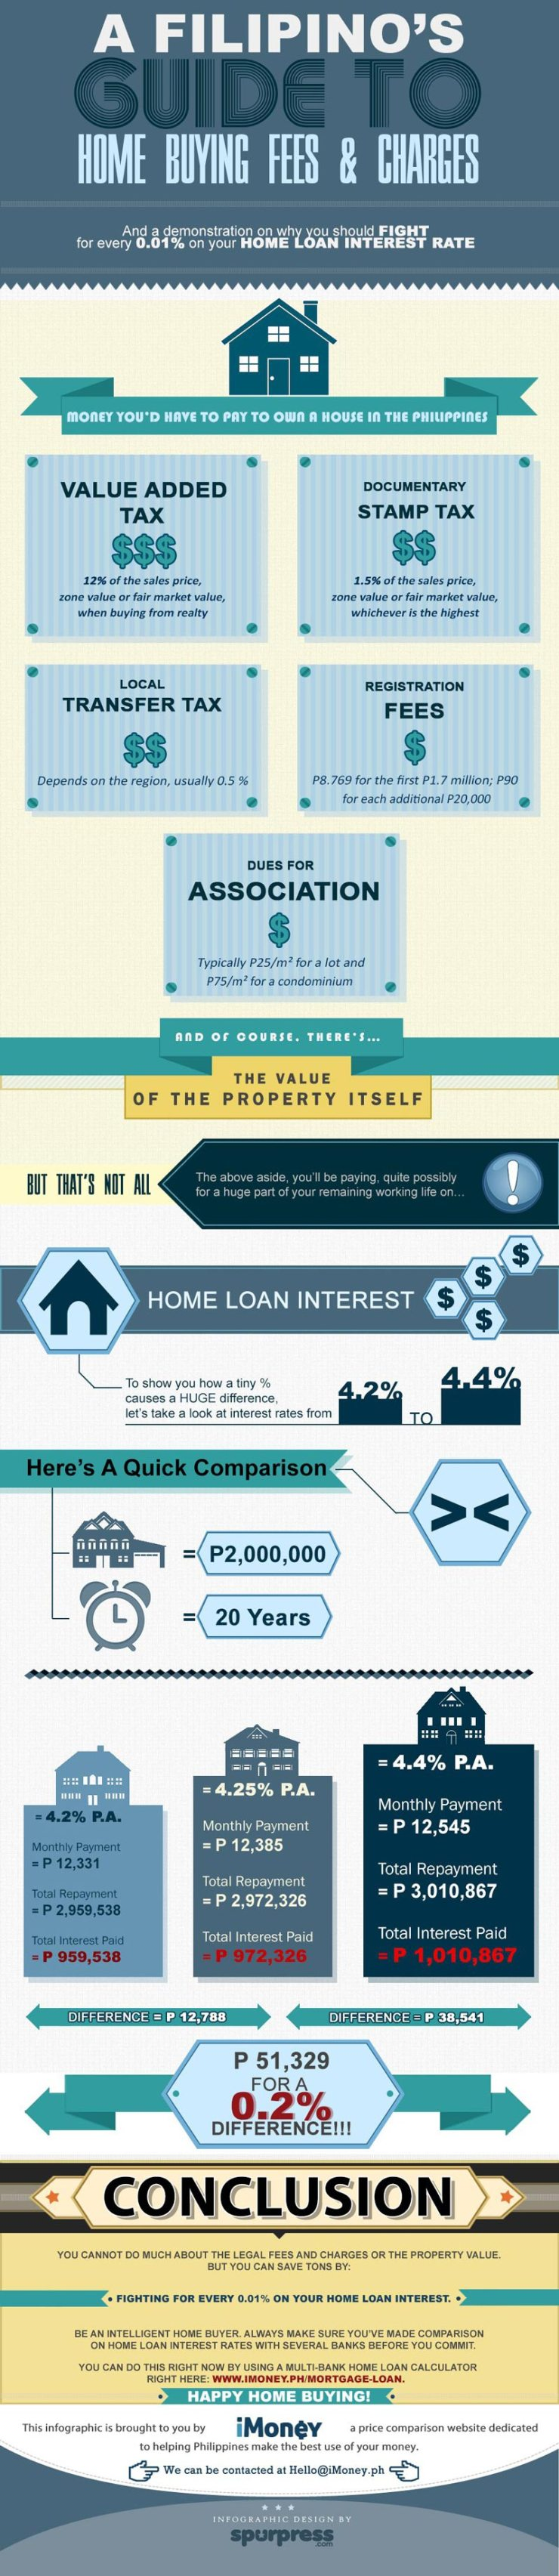 Infographic from iMONEY Philippines